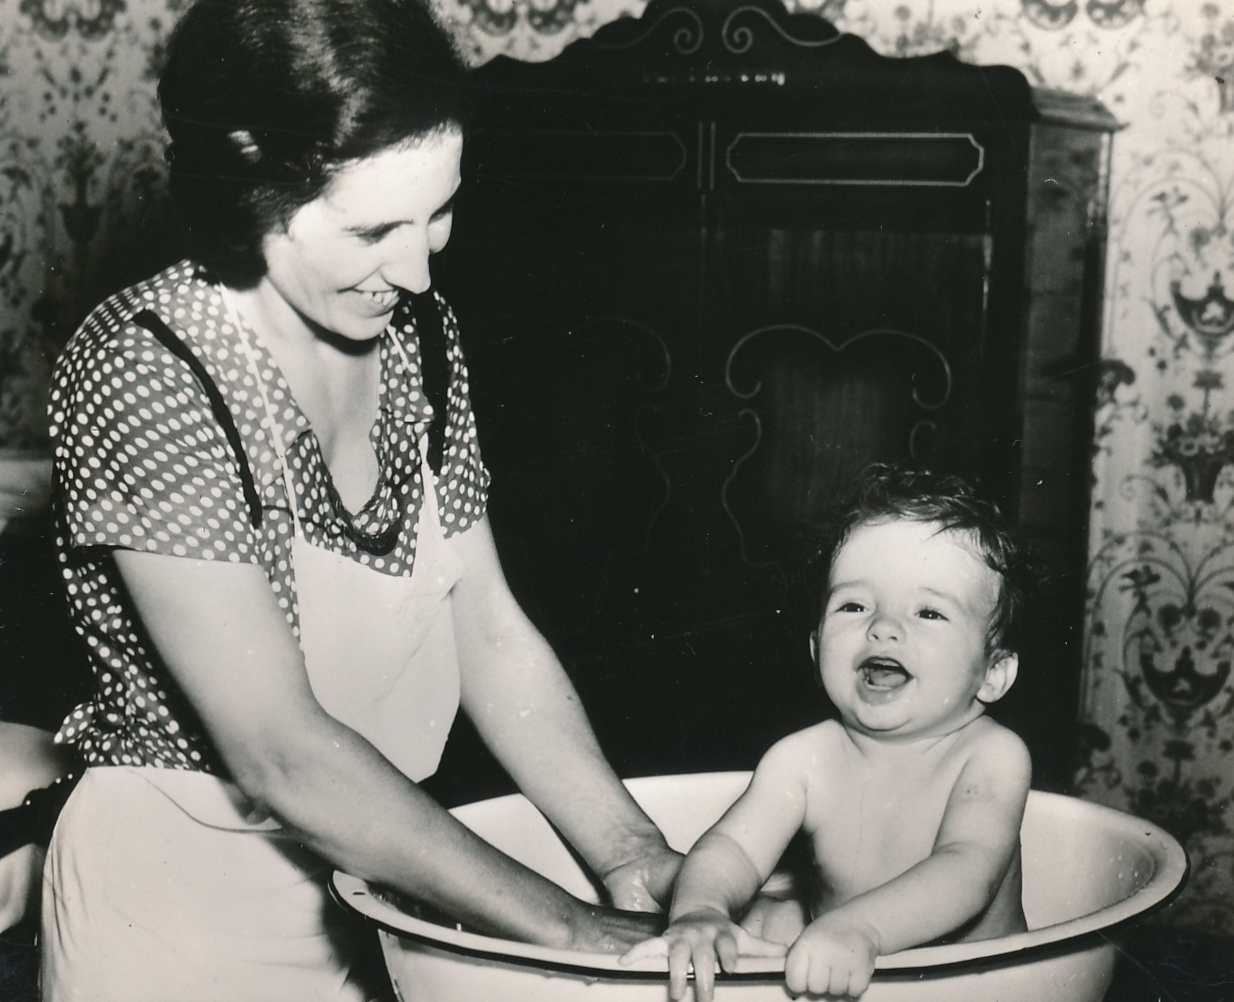 Bathing instructions, provided by a WPA nurse in New Orleans, meet with the approval of both mother and child. Photo courtesy of the National Archives (ca. 1935-1943).